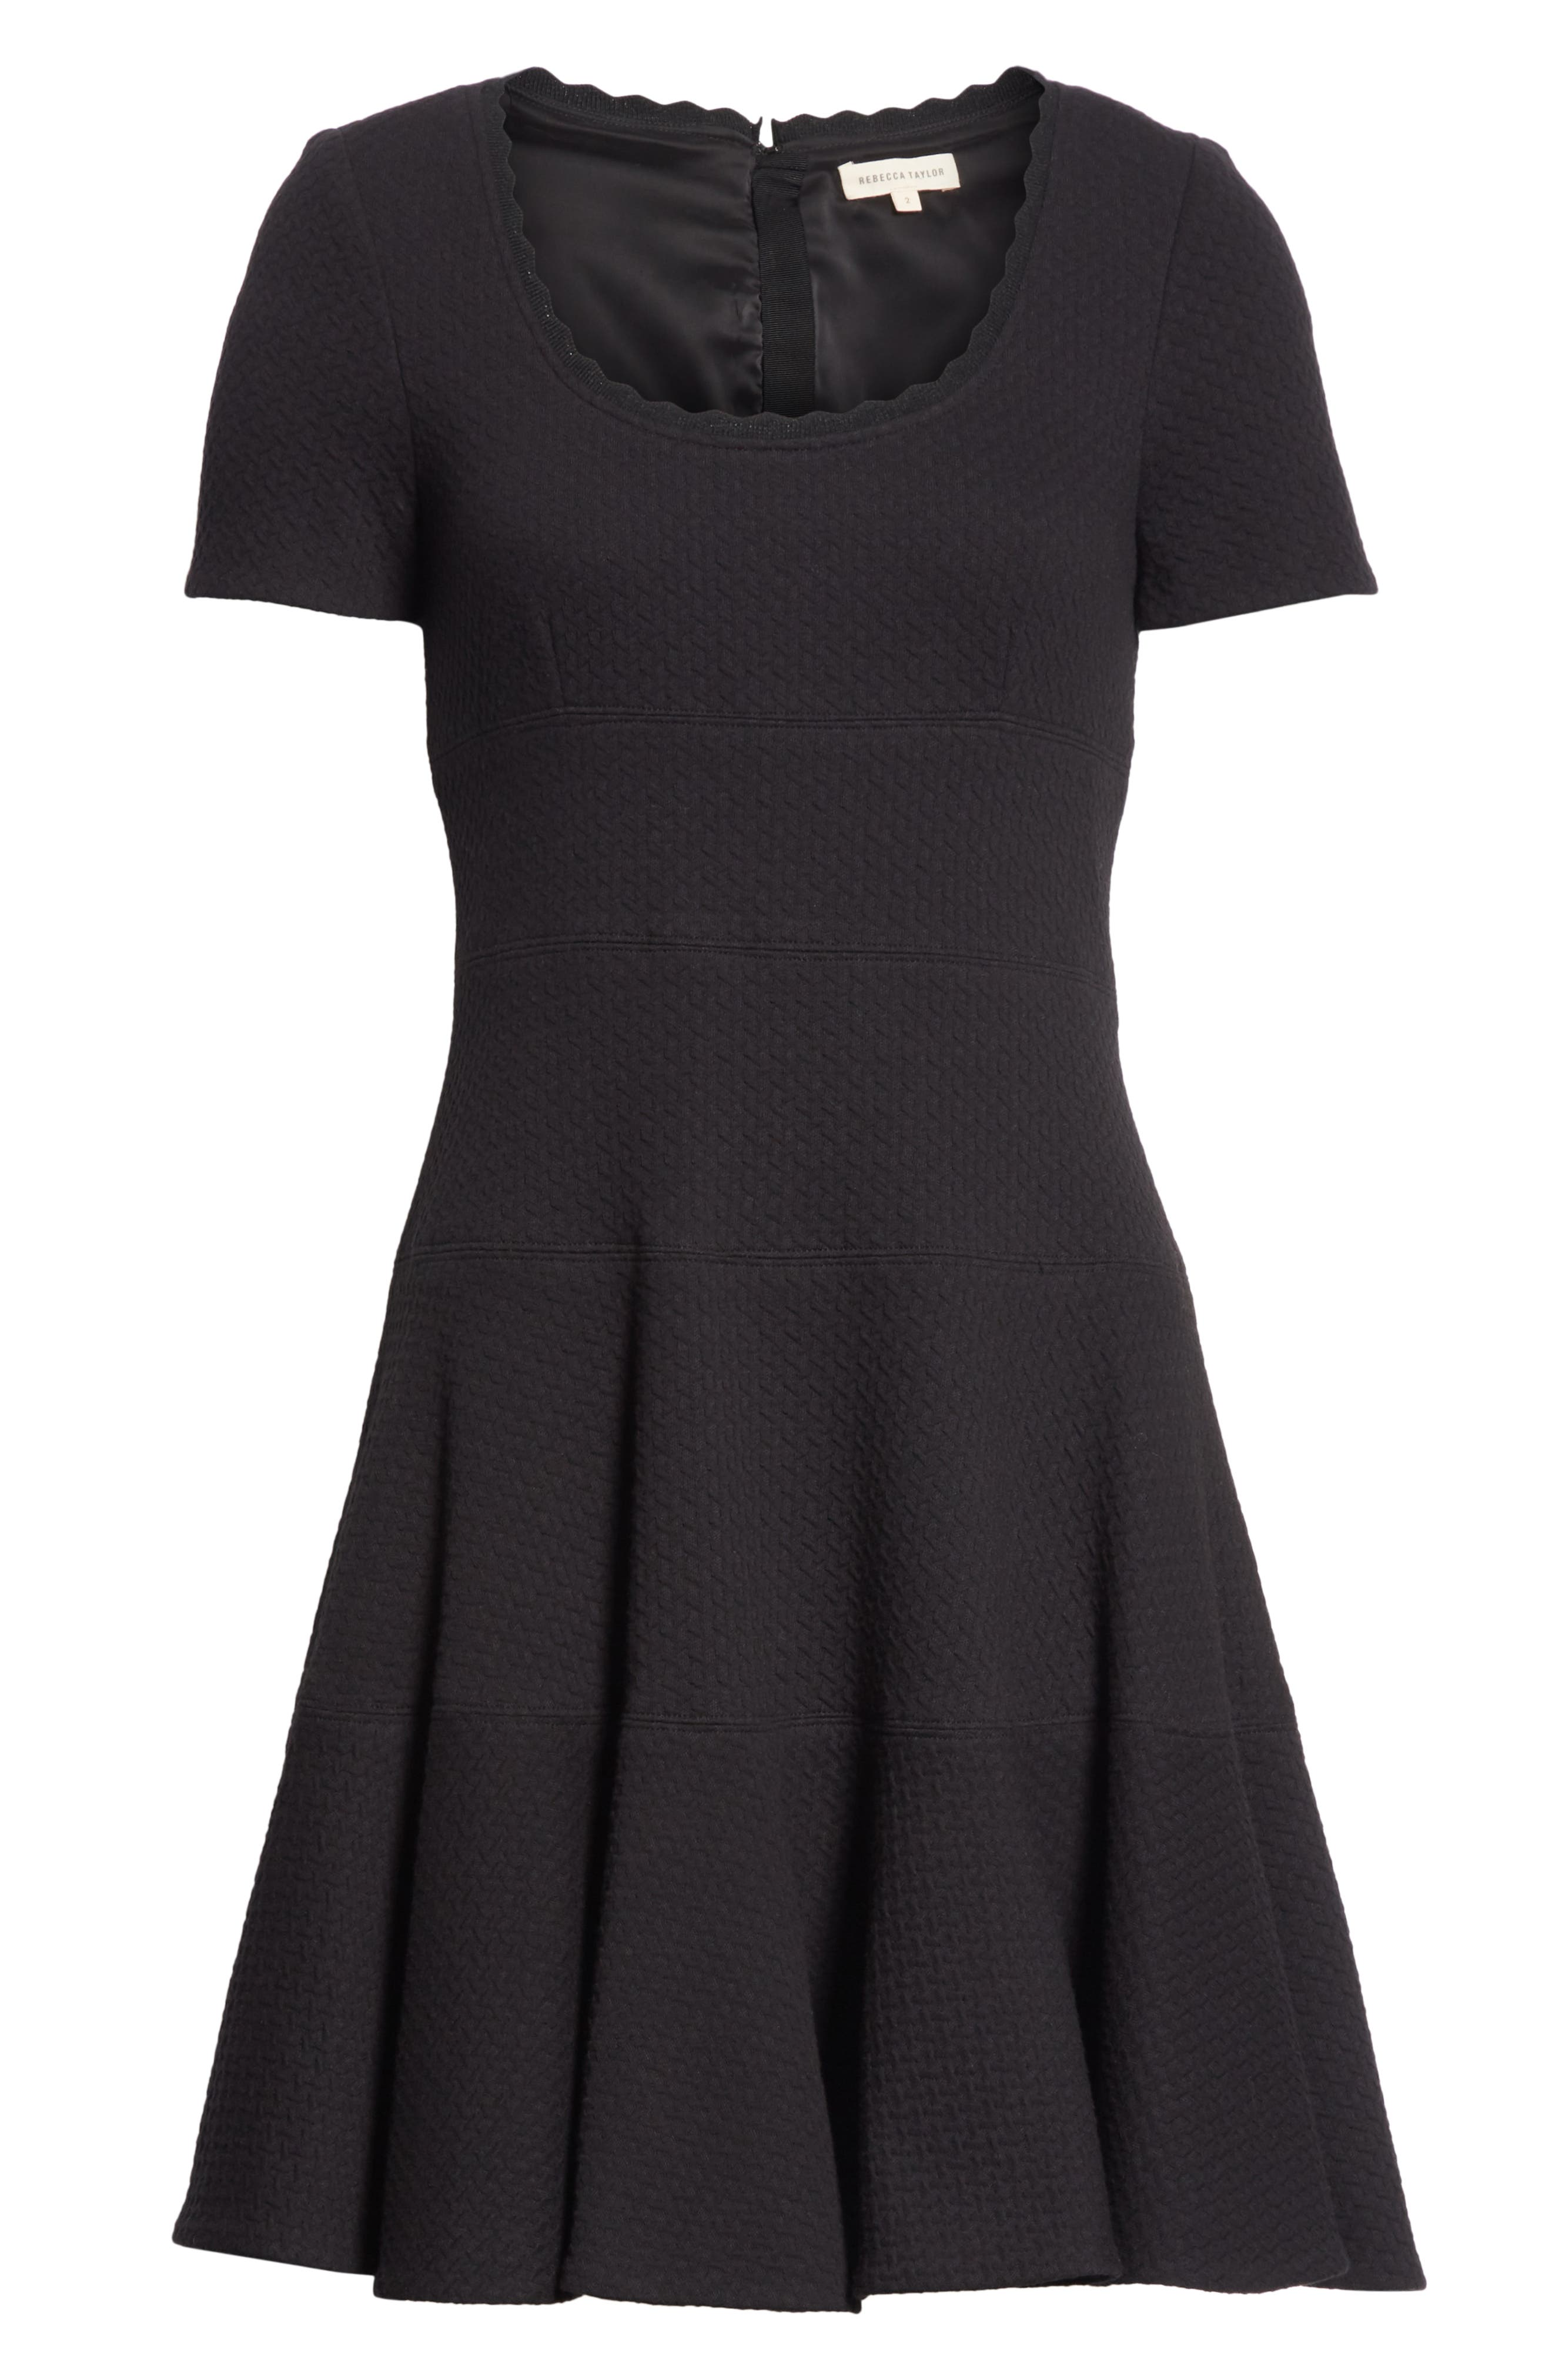 Textured Stretch Cotton Fit & Flare Dress,                             Alternate thumbnail 7, color,                             001